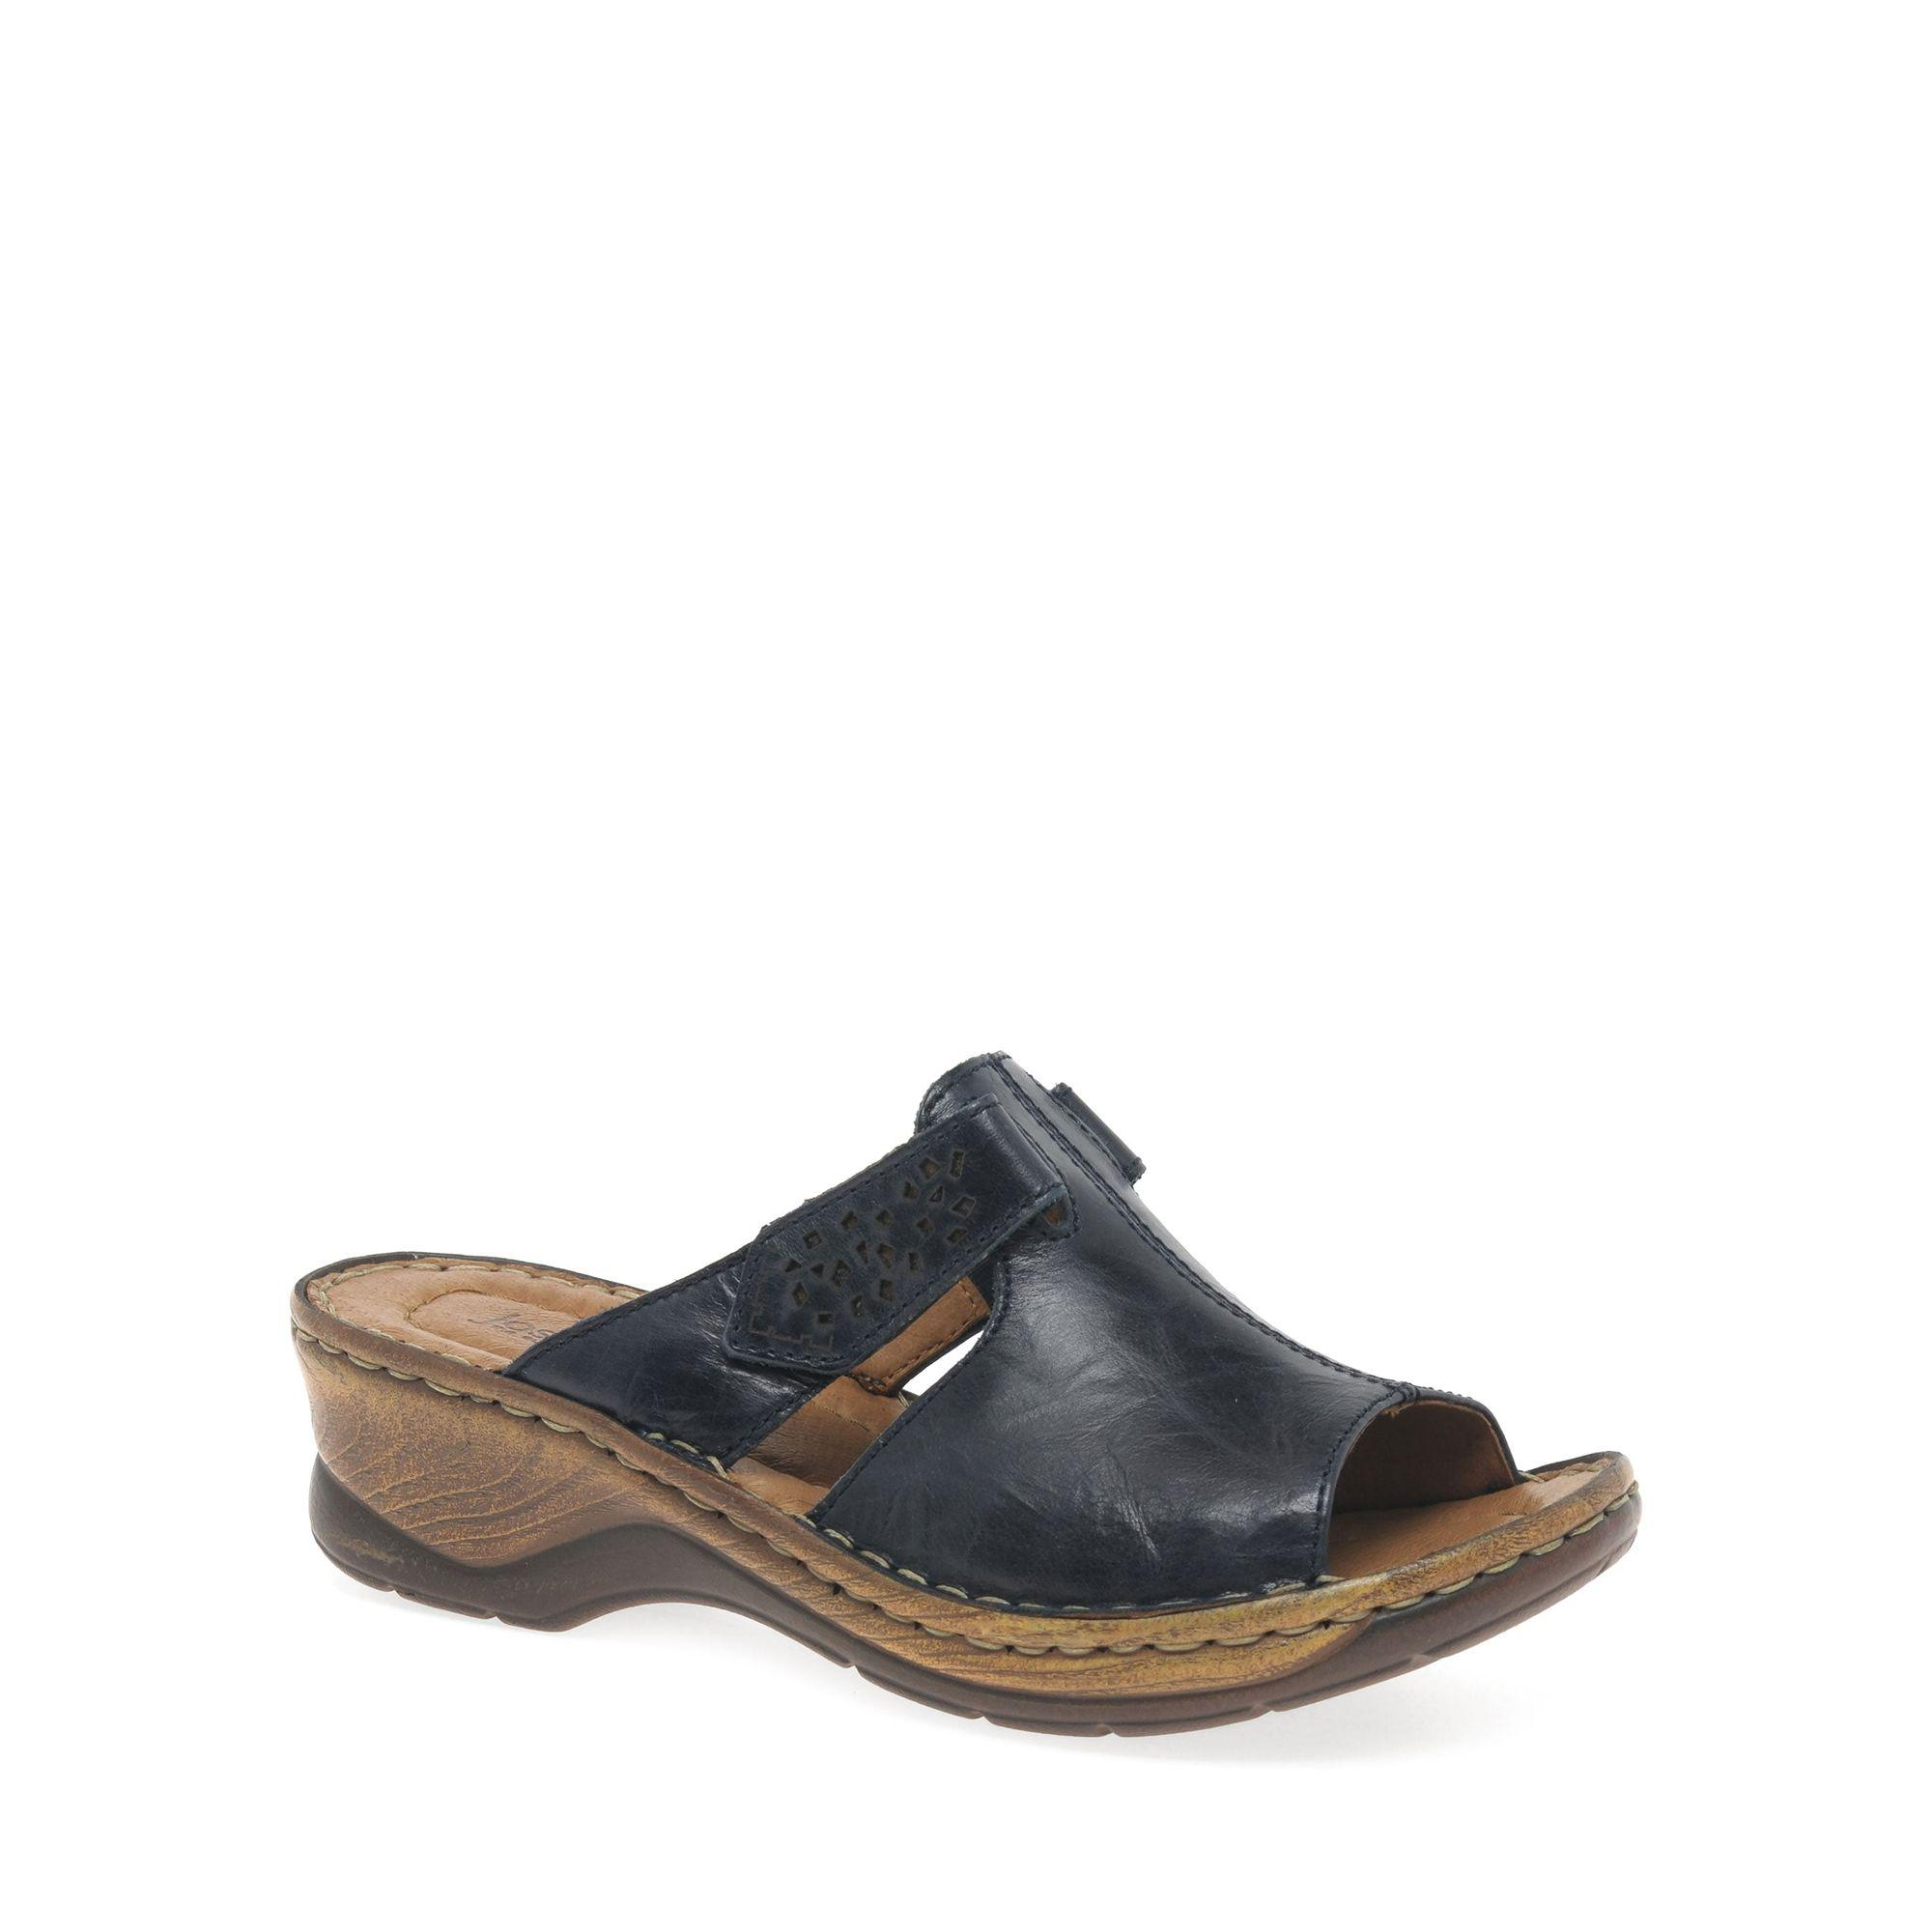 8682f37326137 Josef Seibel Navy  catalonia  Womens Velcro Fastening Sandals in ...